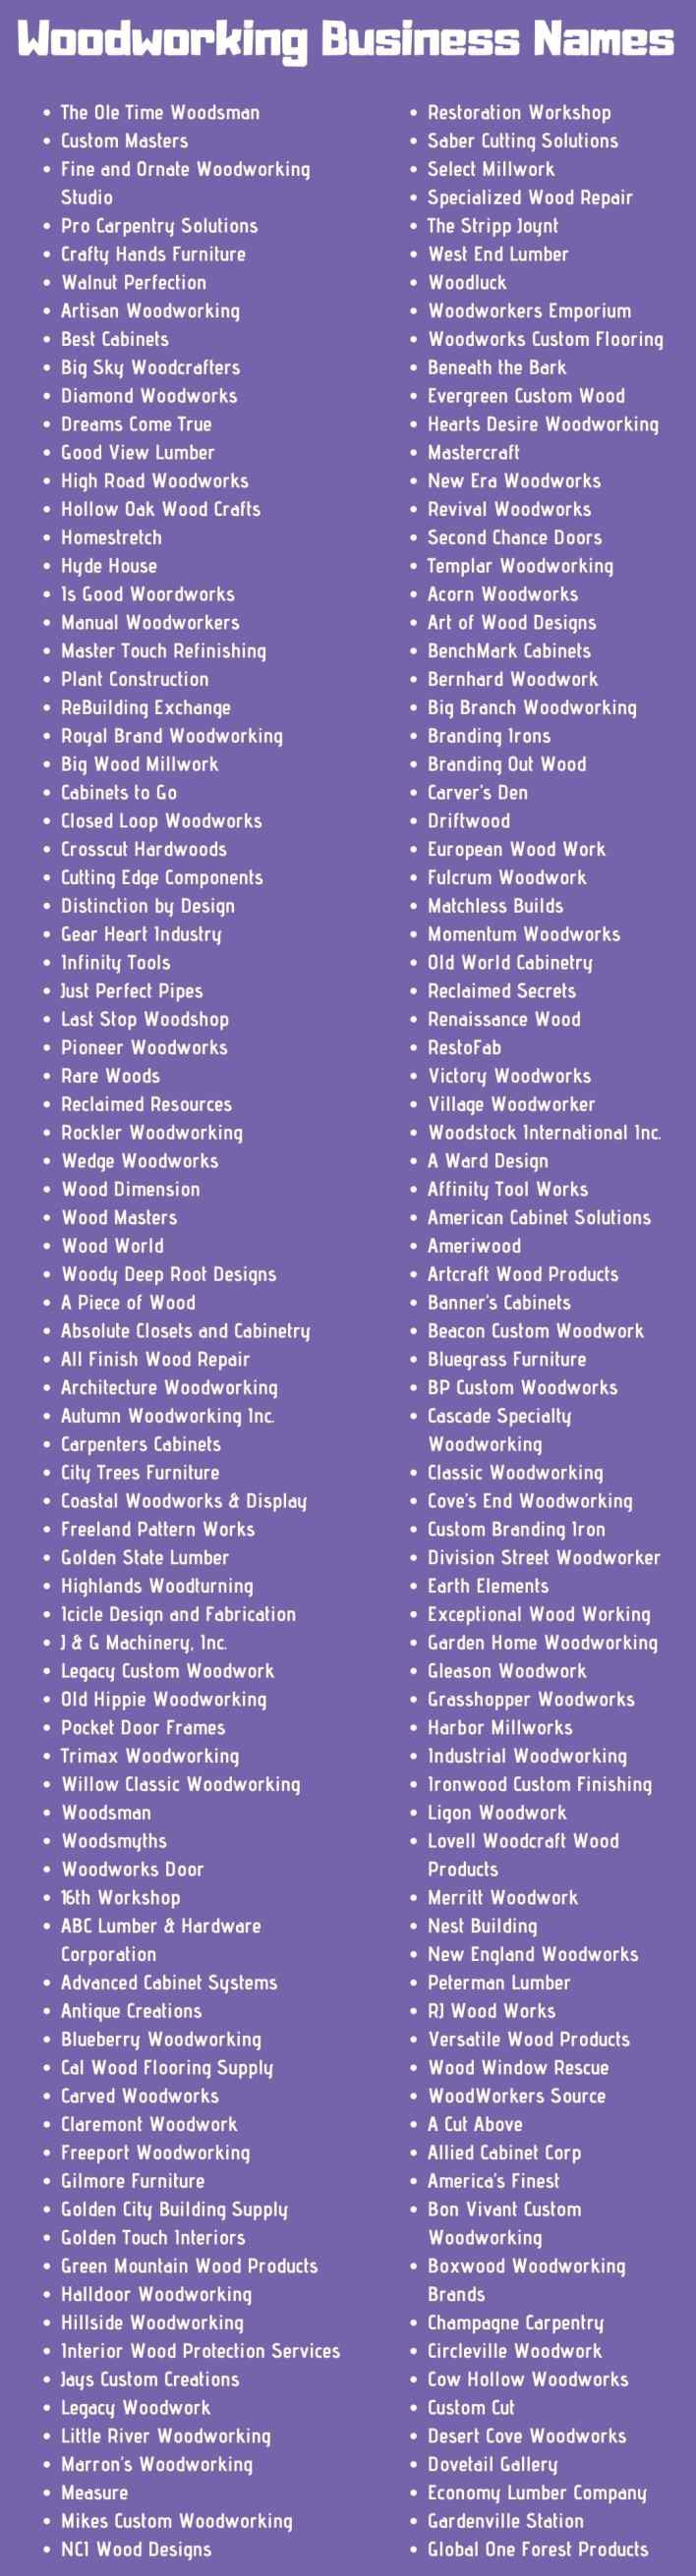 470 Woodworking Business Names, Ideas, and Suggestions